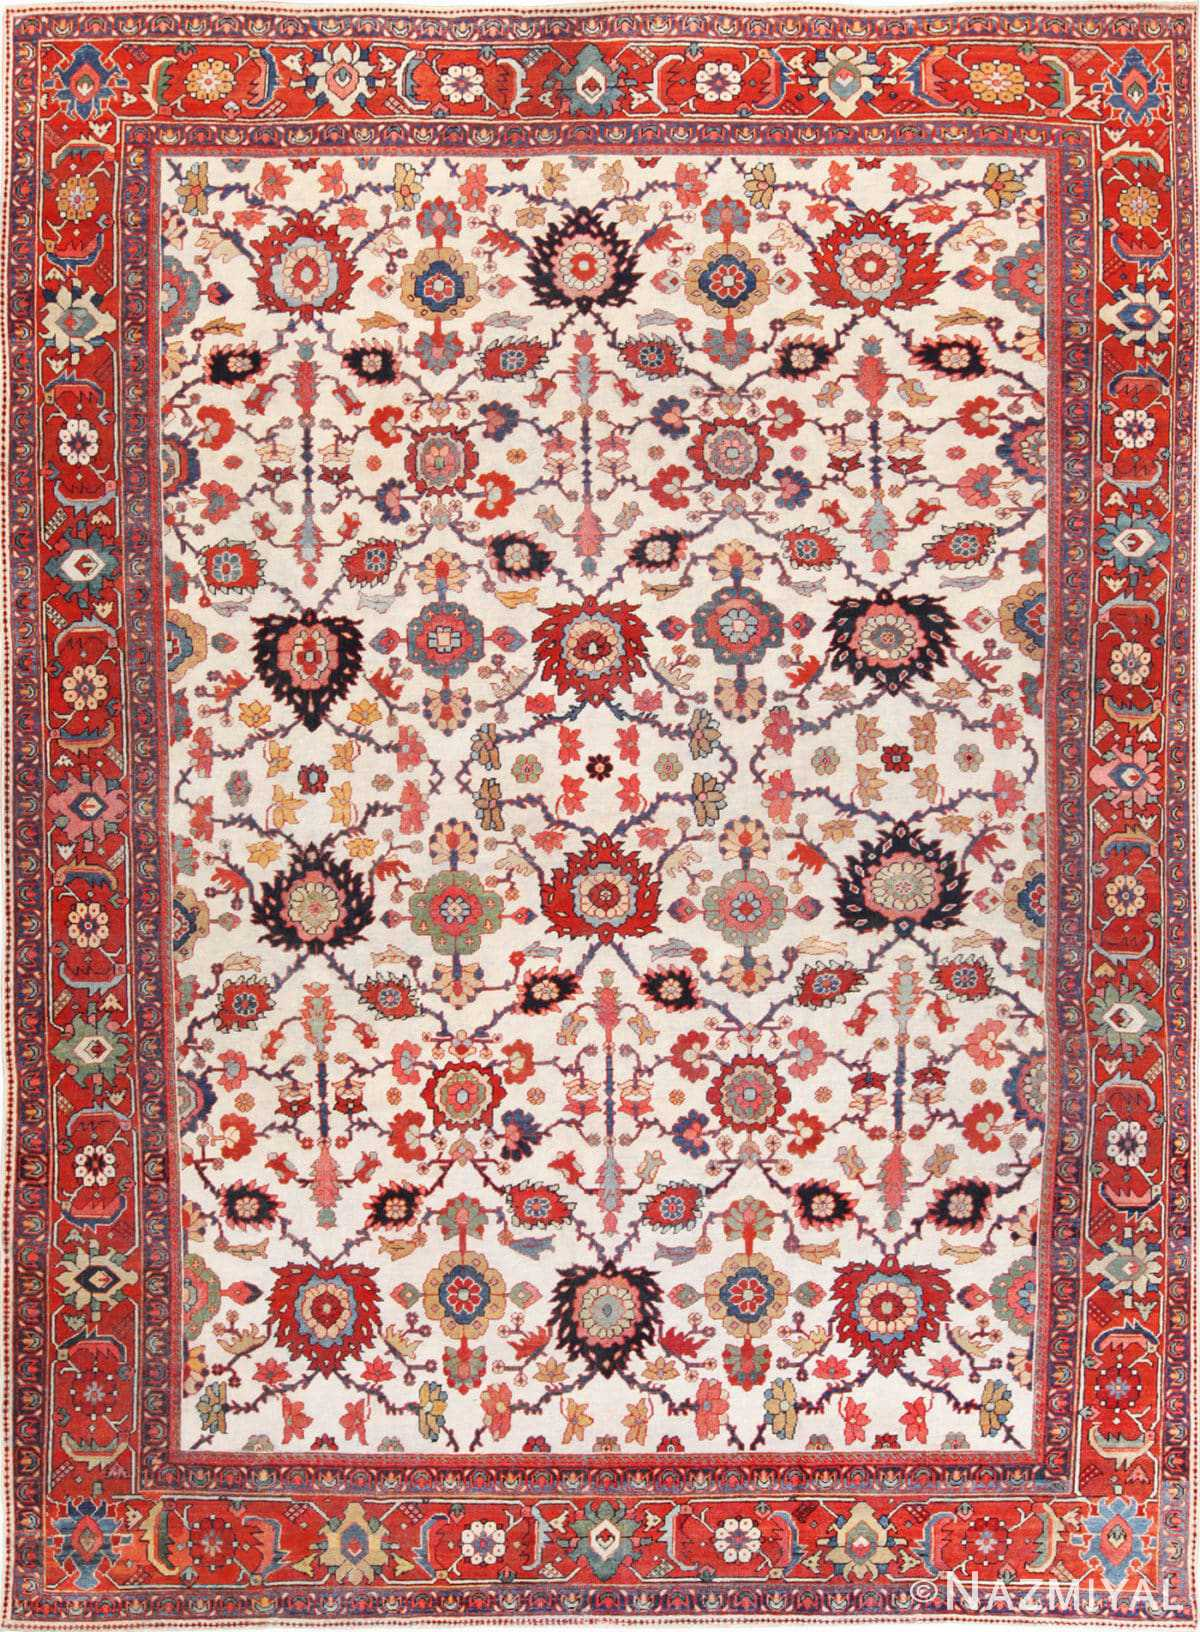 Full view Antique Persian Sultanabad rug 70137 by Nazmiyal